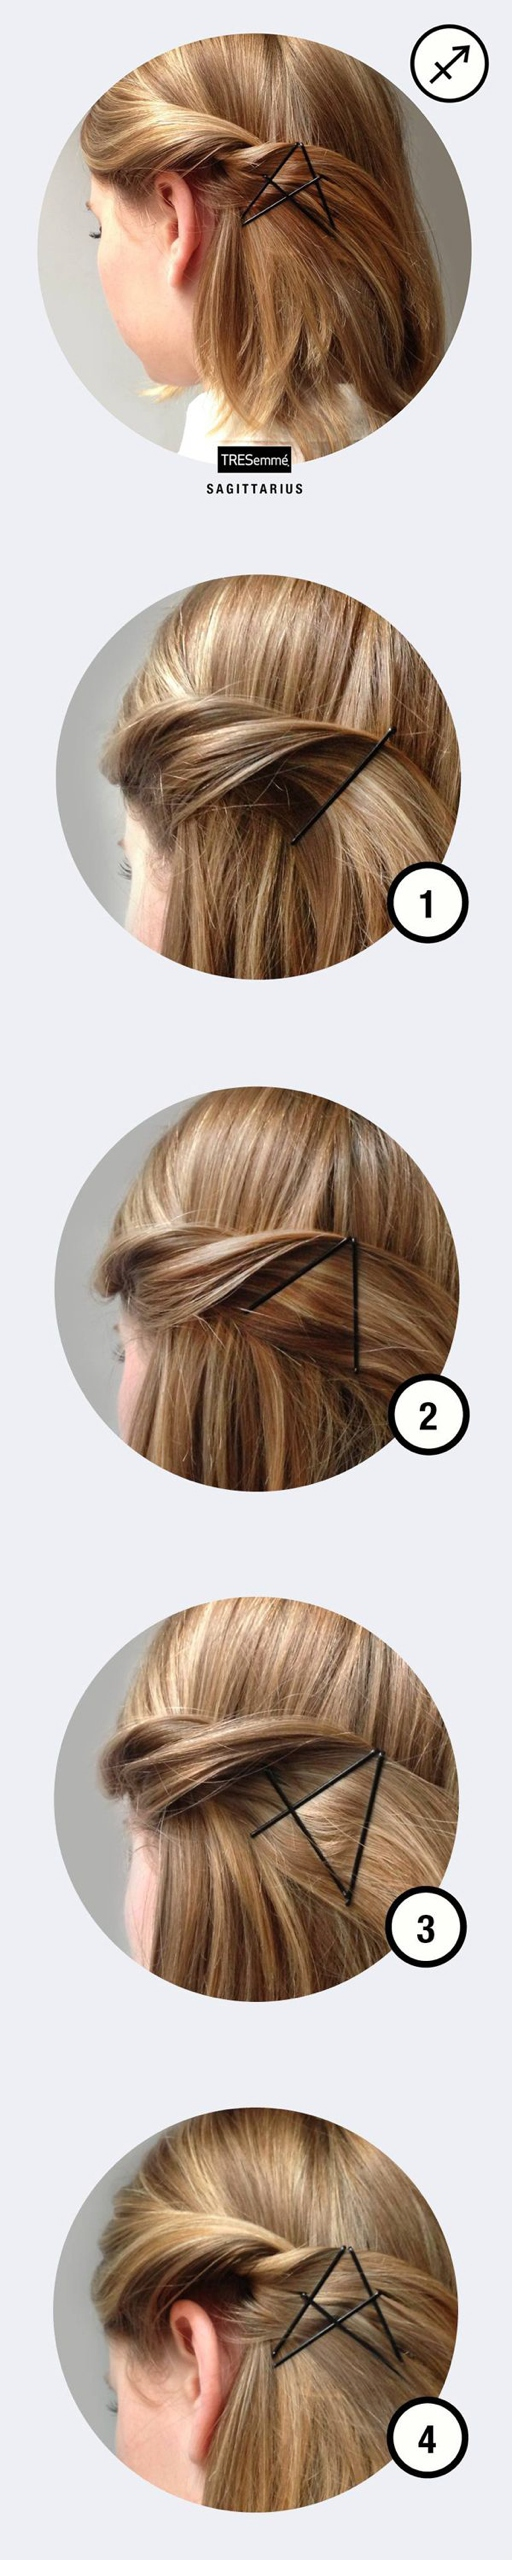 twist hair using bobby pins